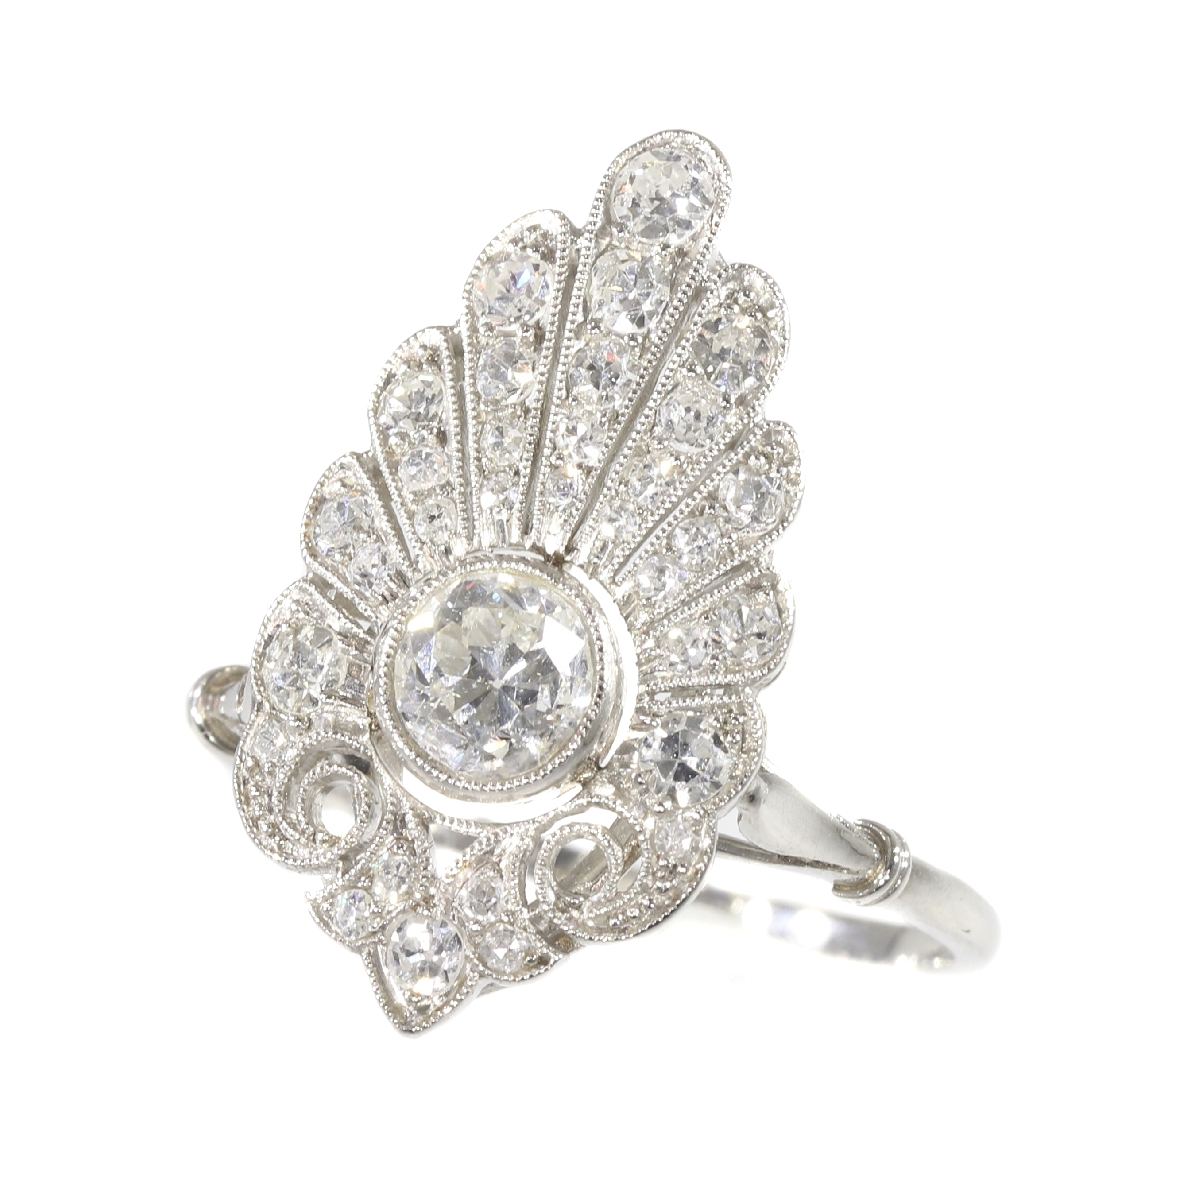 French elegant Belle Epoque diamond engagement ring platinum